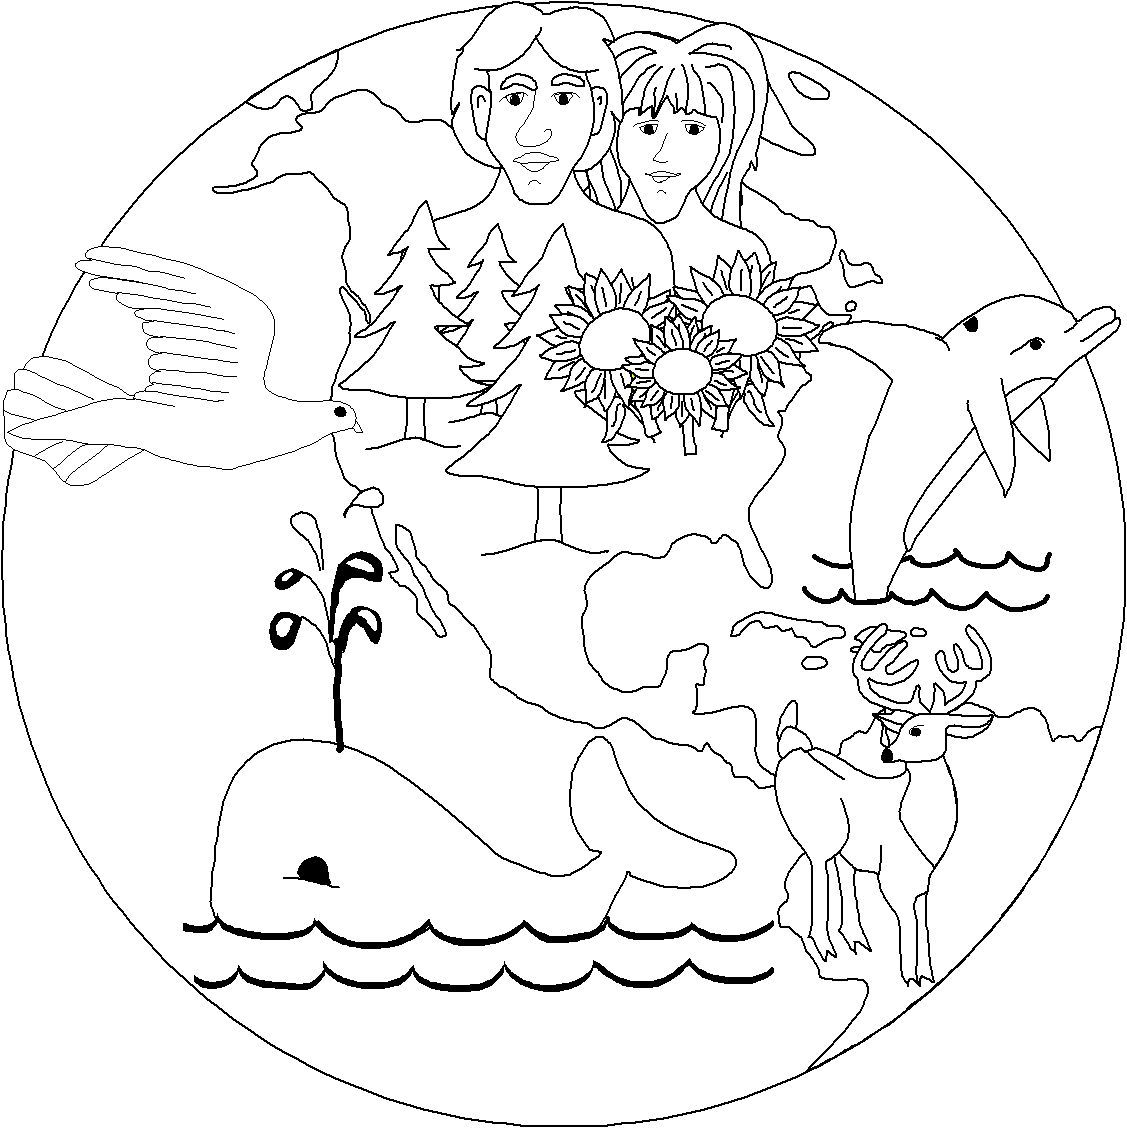 creation story coloring pages | Free Christian Graphics of creation | Bible Stories for ...